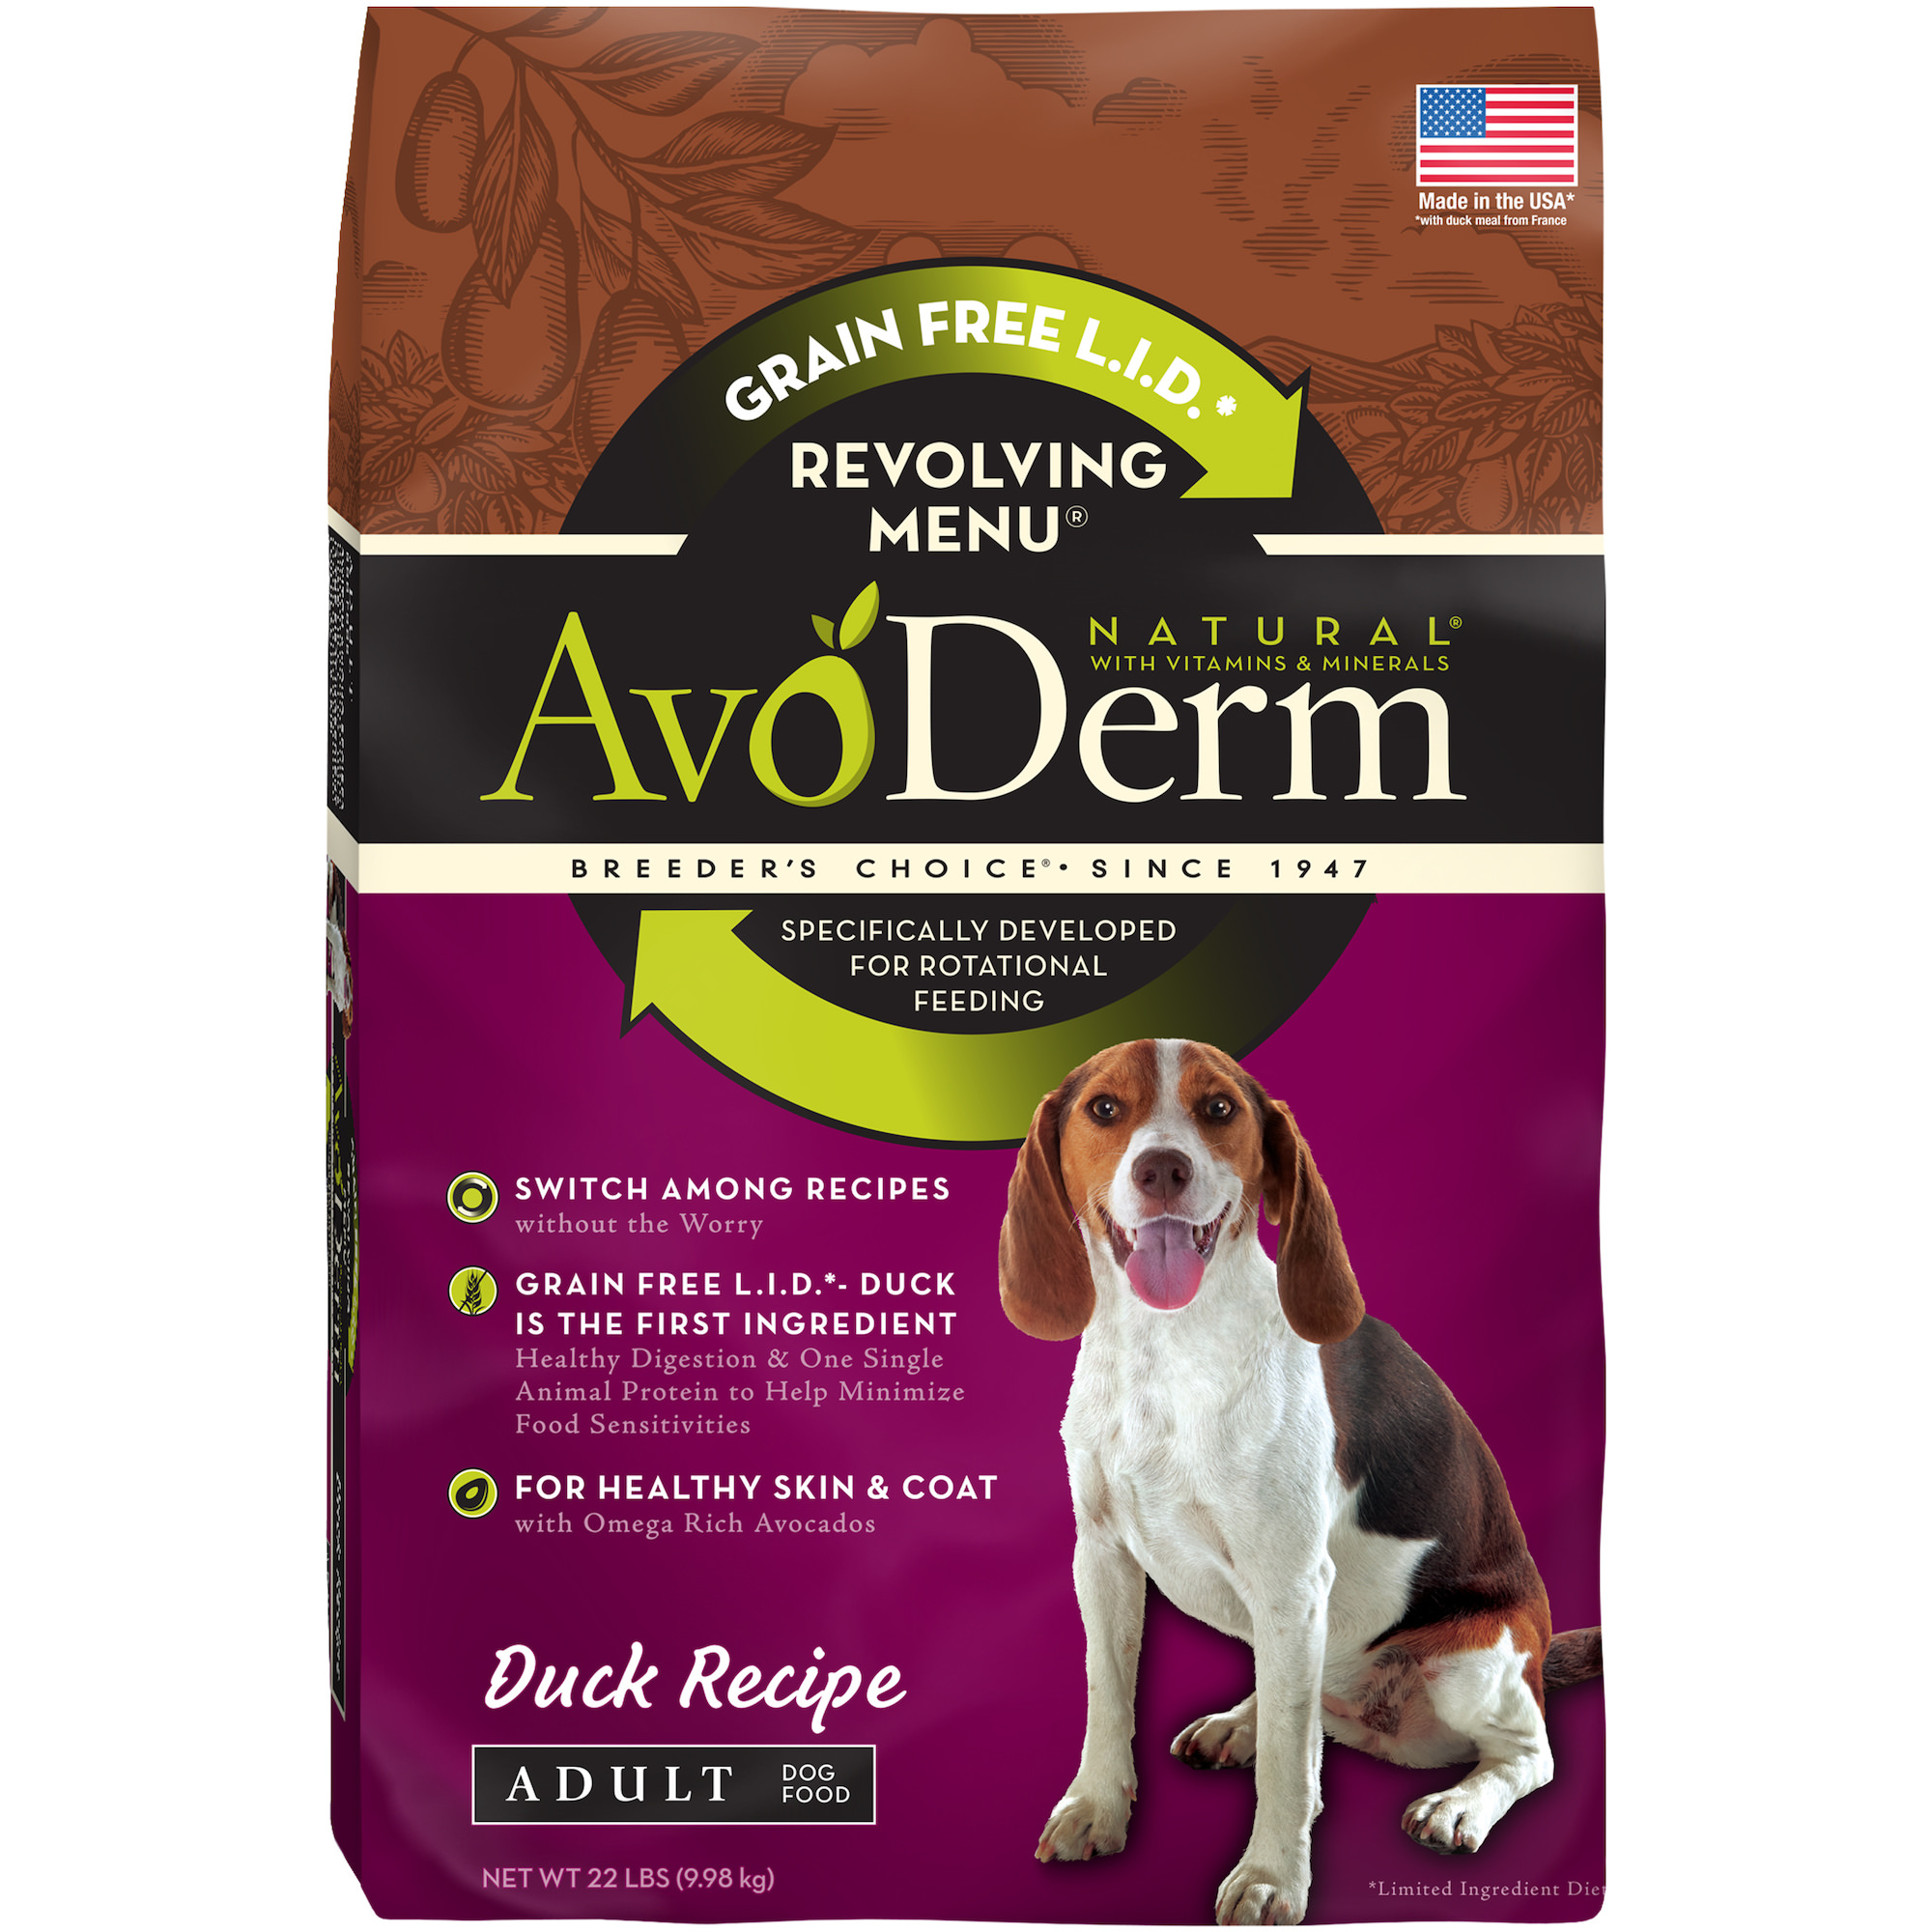 AvoDerm Natural Revolving Menu Adult Dog Food, Duck, 22-Pound